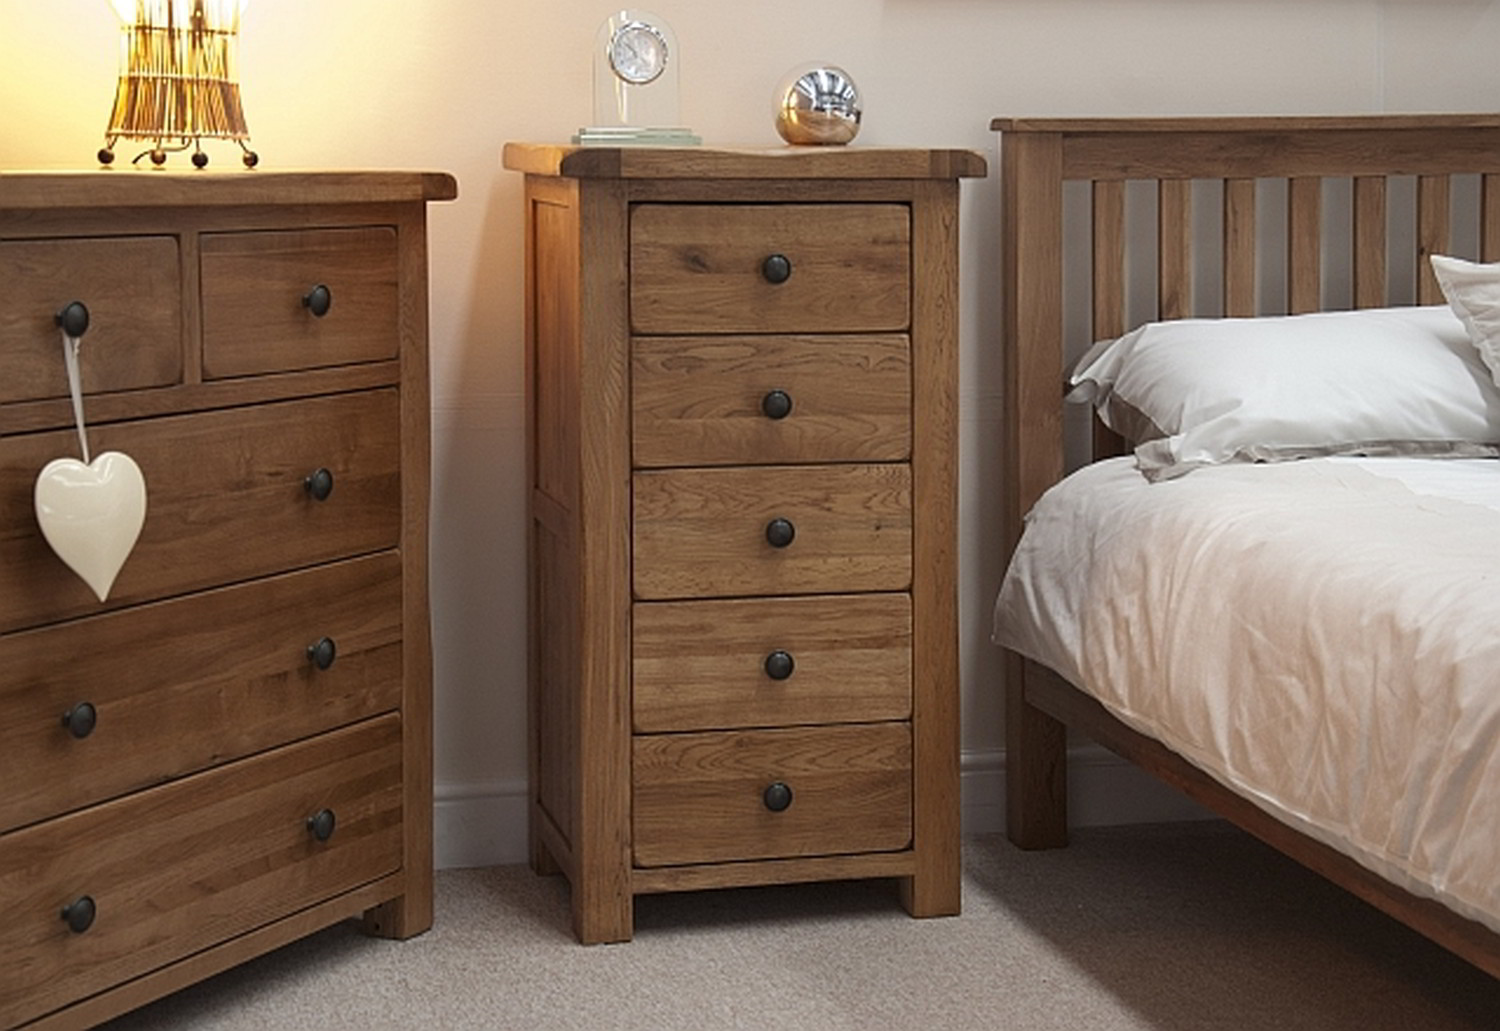 Details about tilson solid rustic oak bedroom furniture narrow wellington chest of drawers